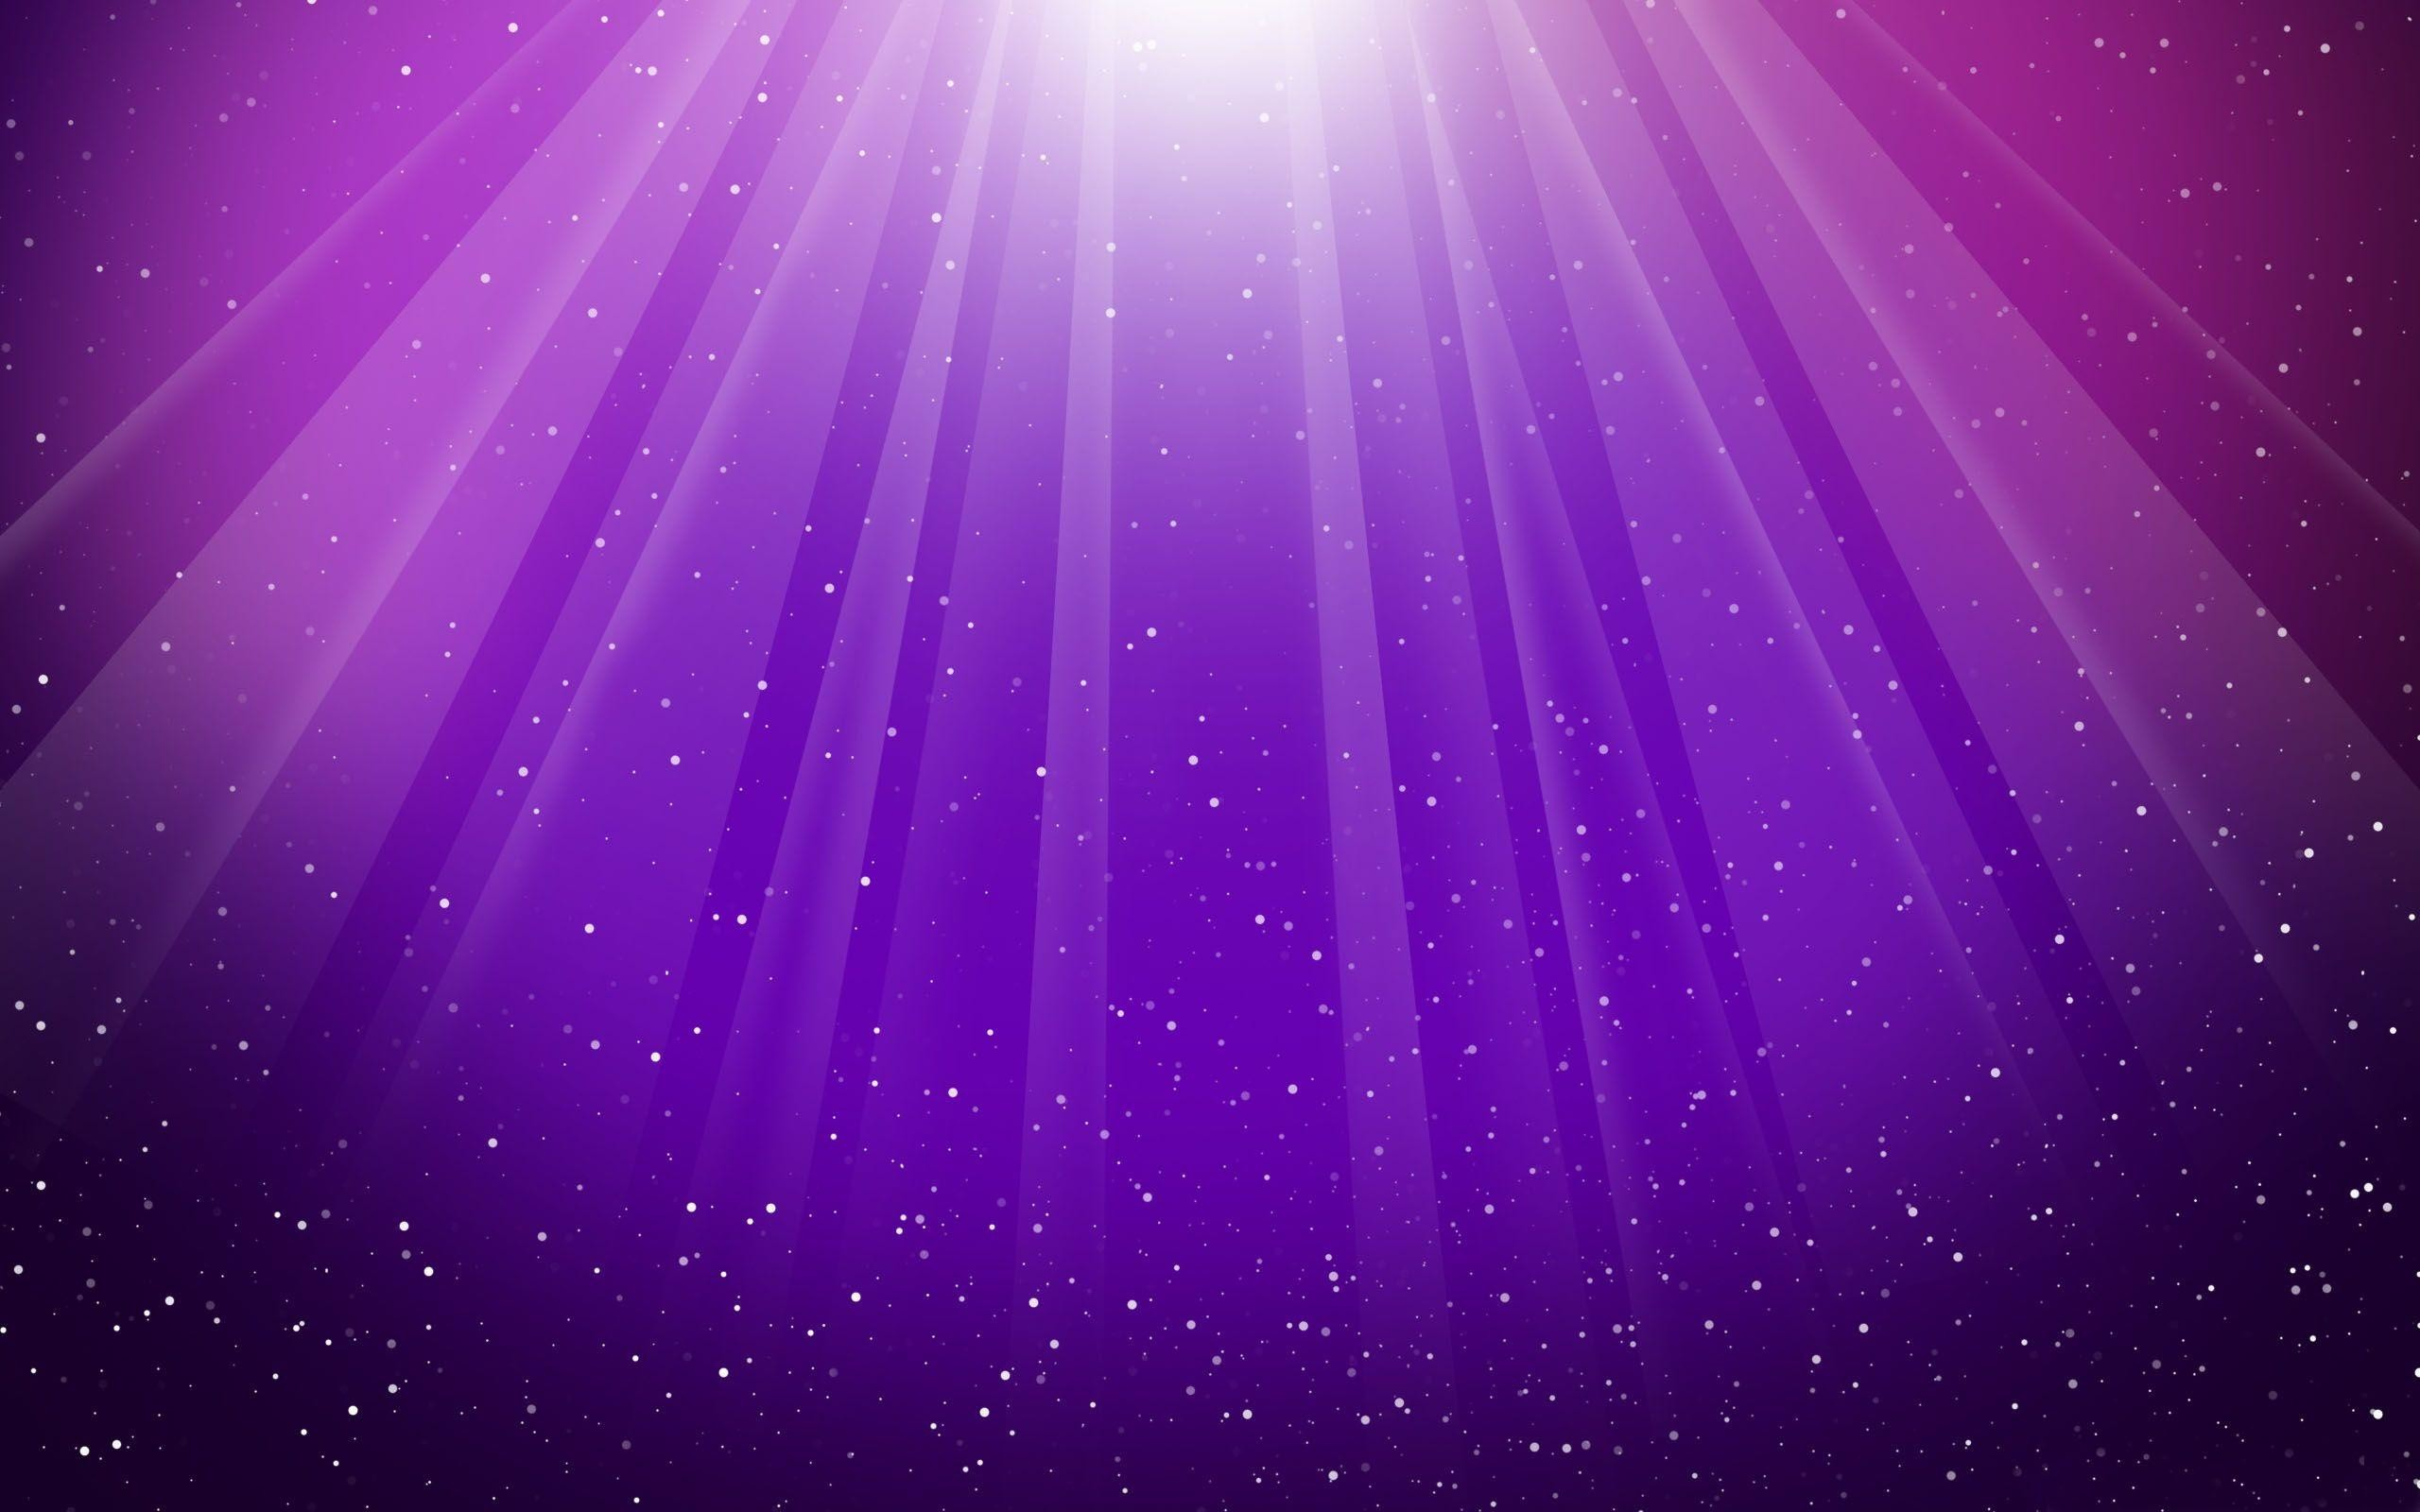 2560x1600 Wallpapers For > Pretty Purple Pattern Backgrounds